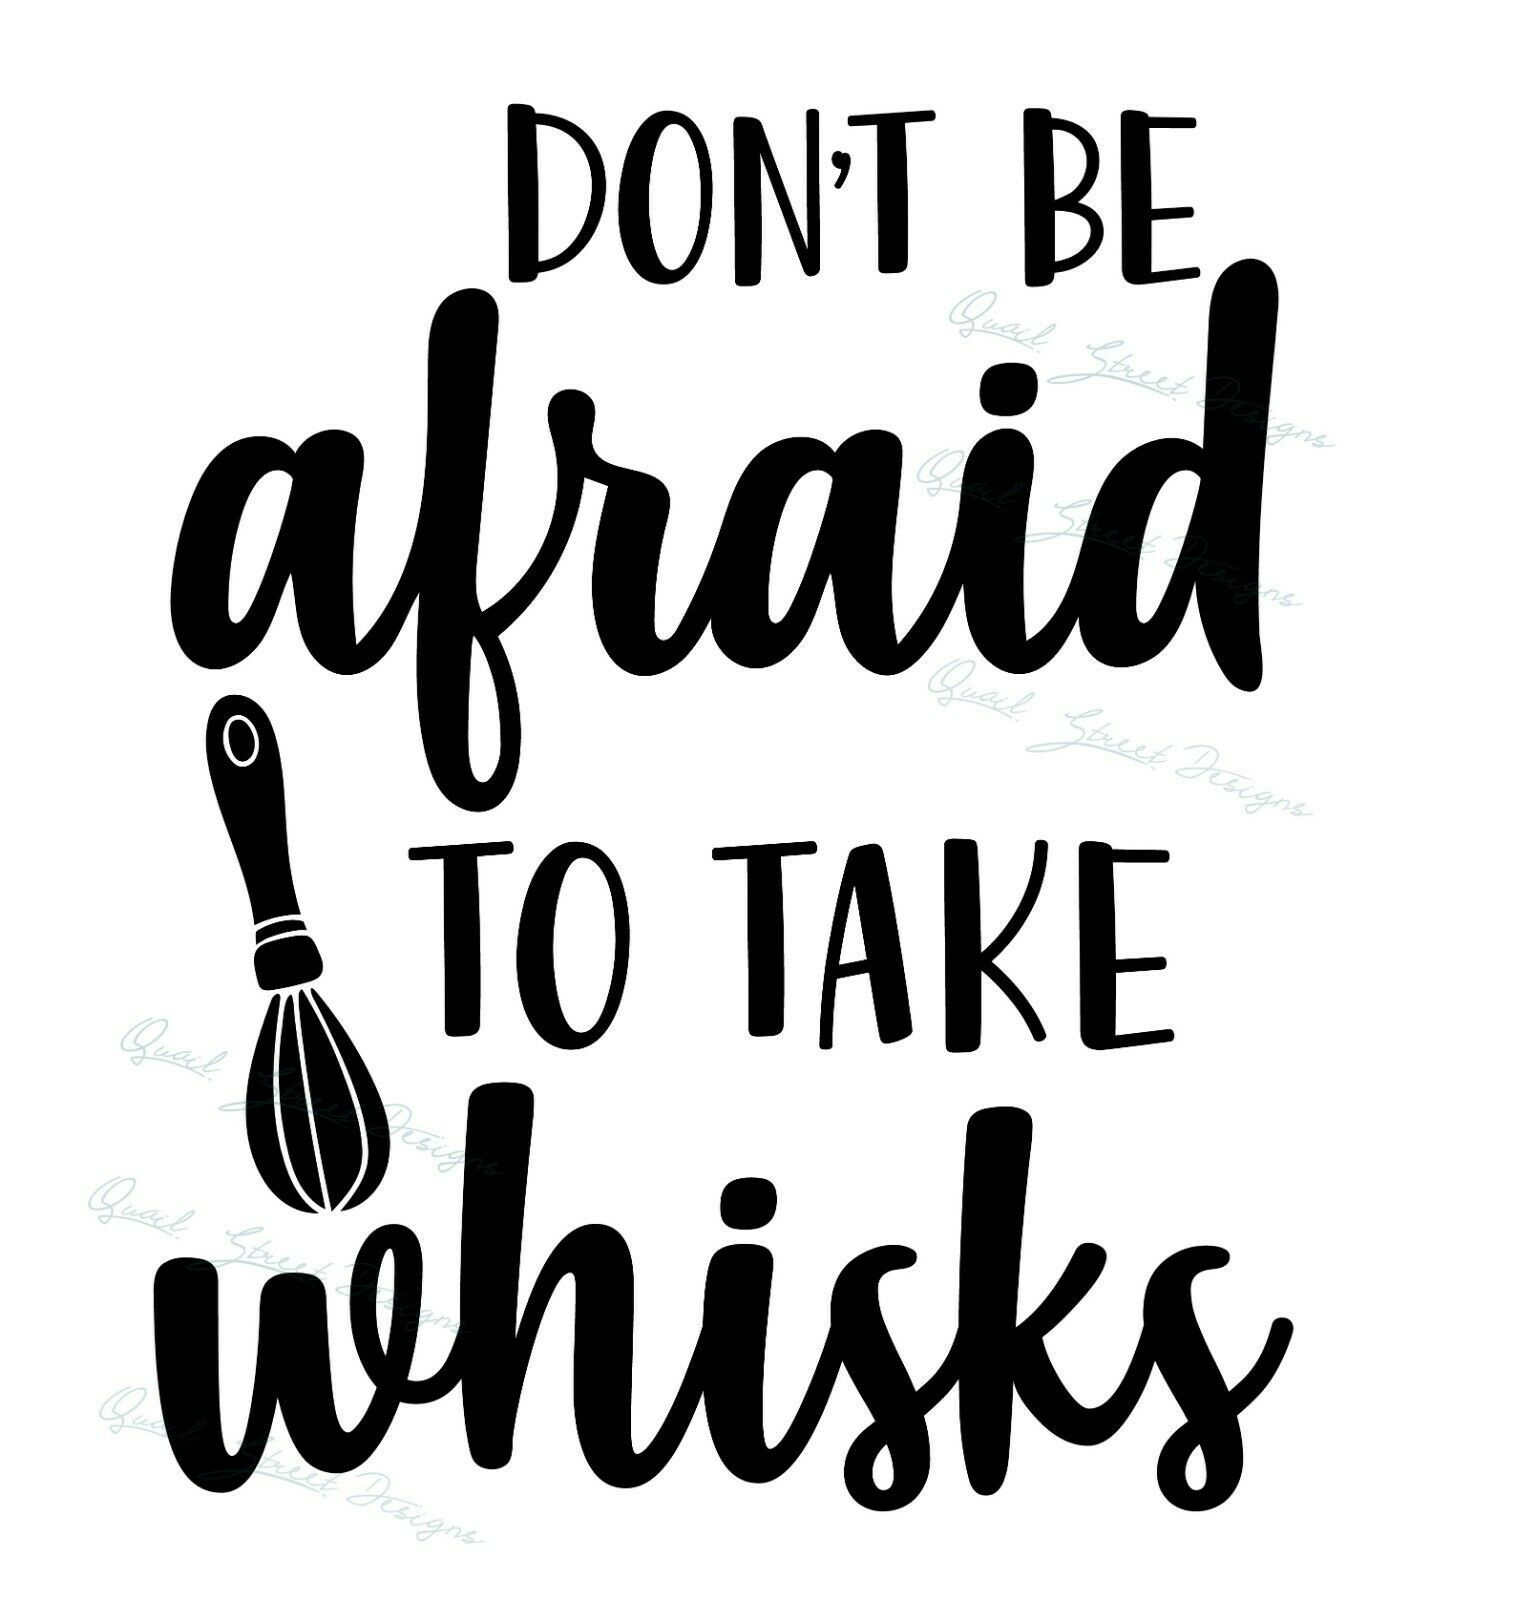 Primary image for Don't Be Afraid To Take Whisks - Kitchen Cooking Vinyl Decal Free Ship 1333